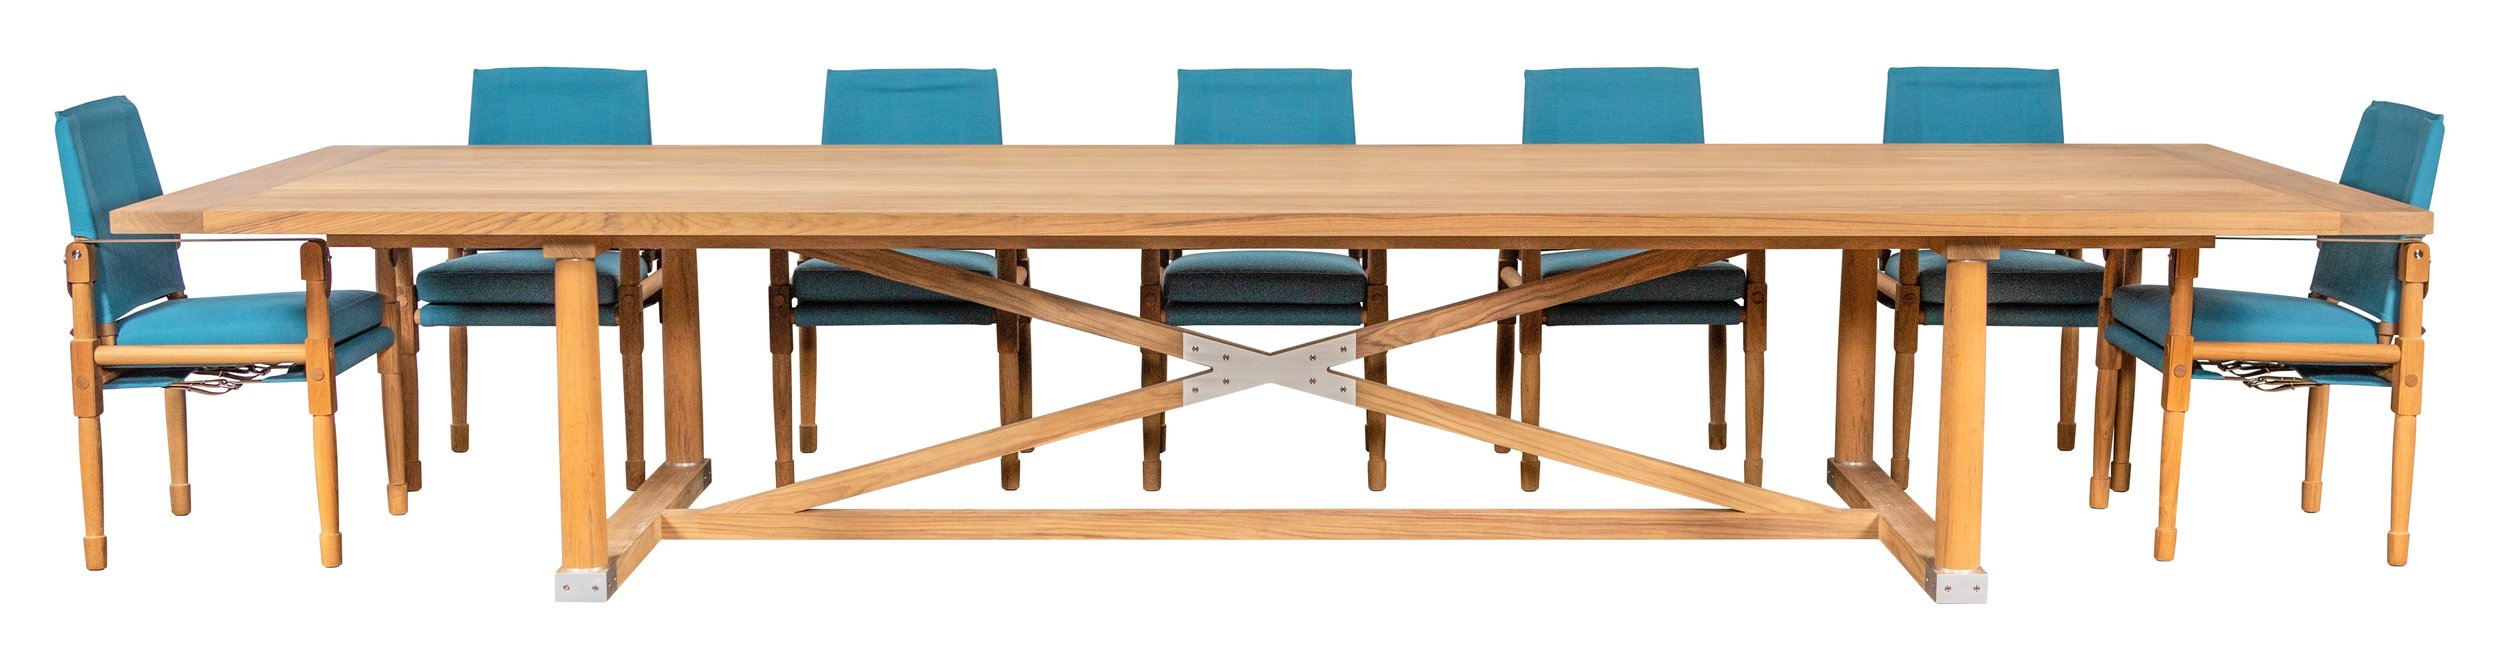 Carden Table with Chatwin Chairs